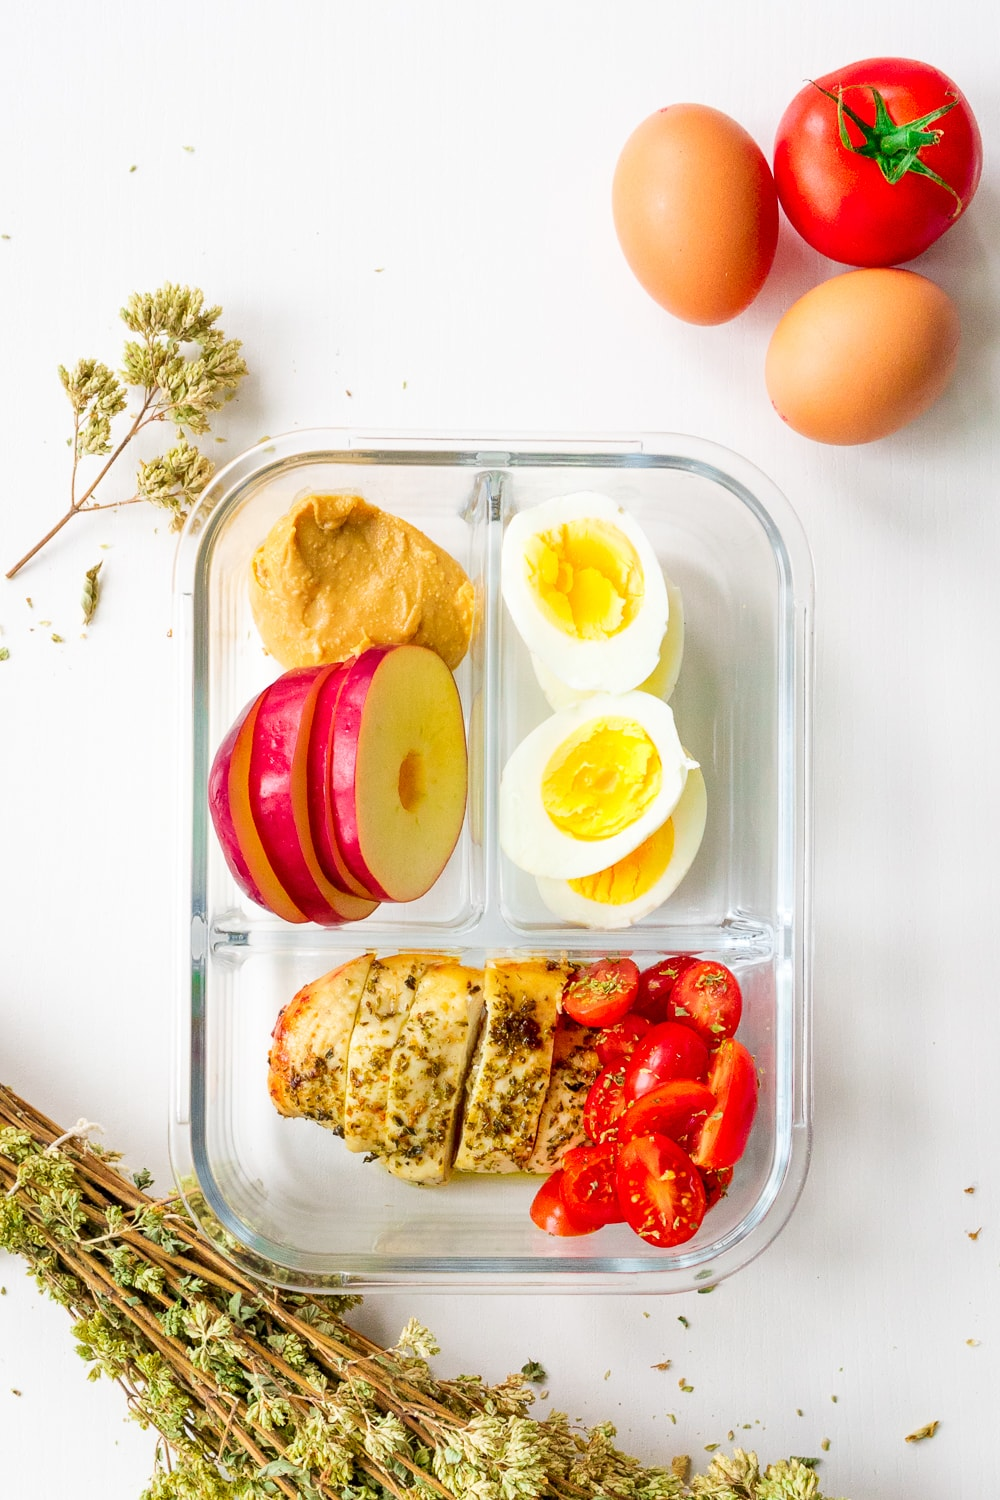 Protein Packed Lunch box idea: Who says bringing lunch from home needs to be boring? This awesome lunch box for adults is perfect for work and are ready in less than 30 minutes!